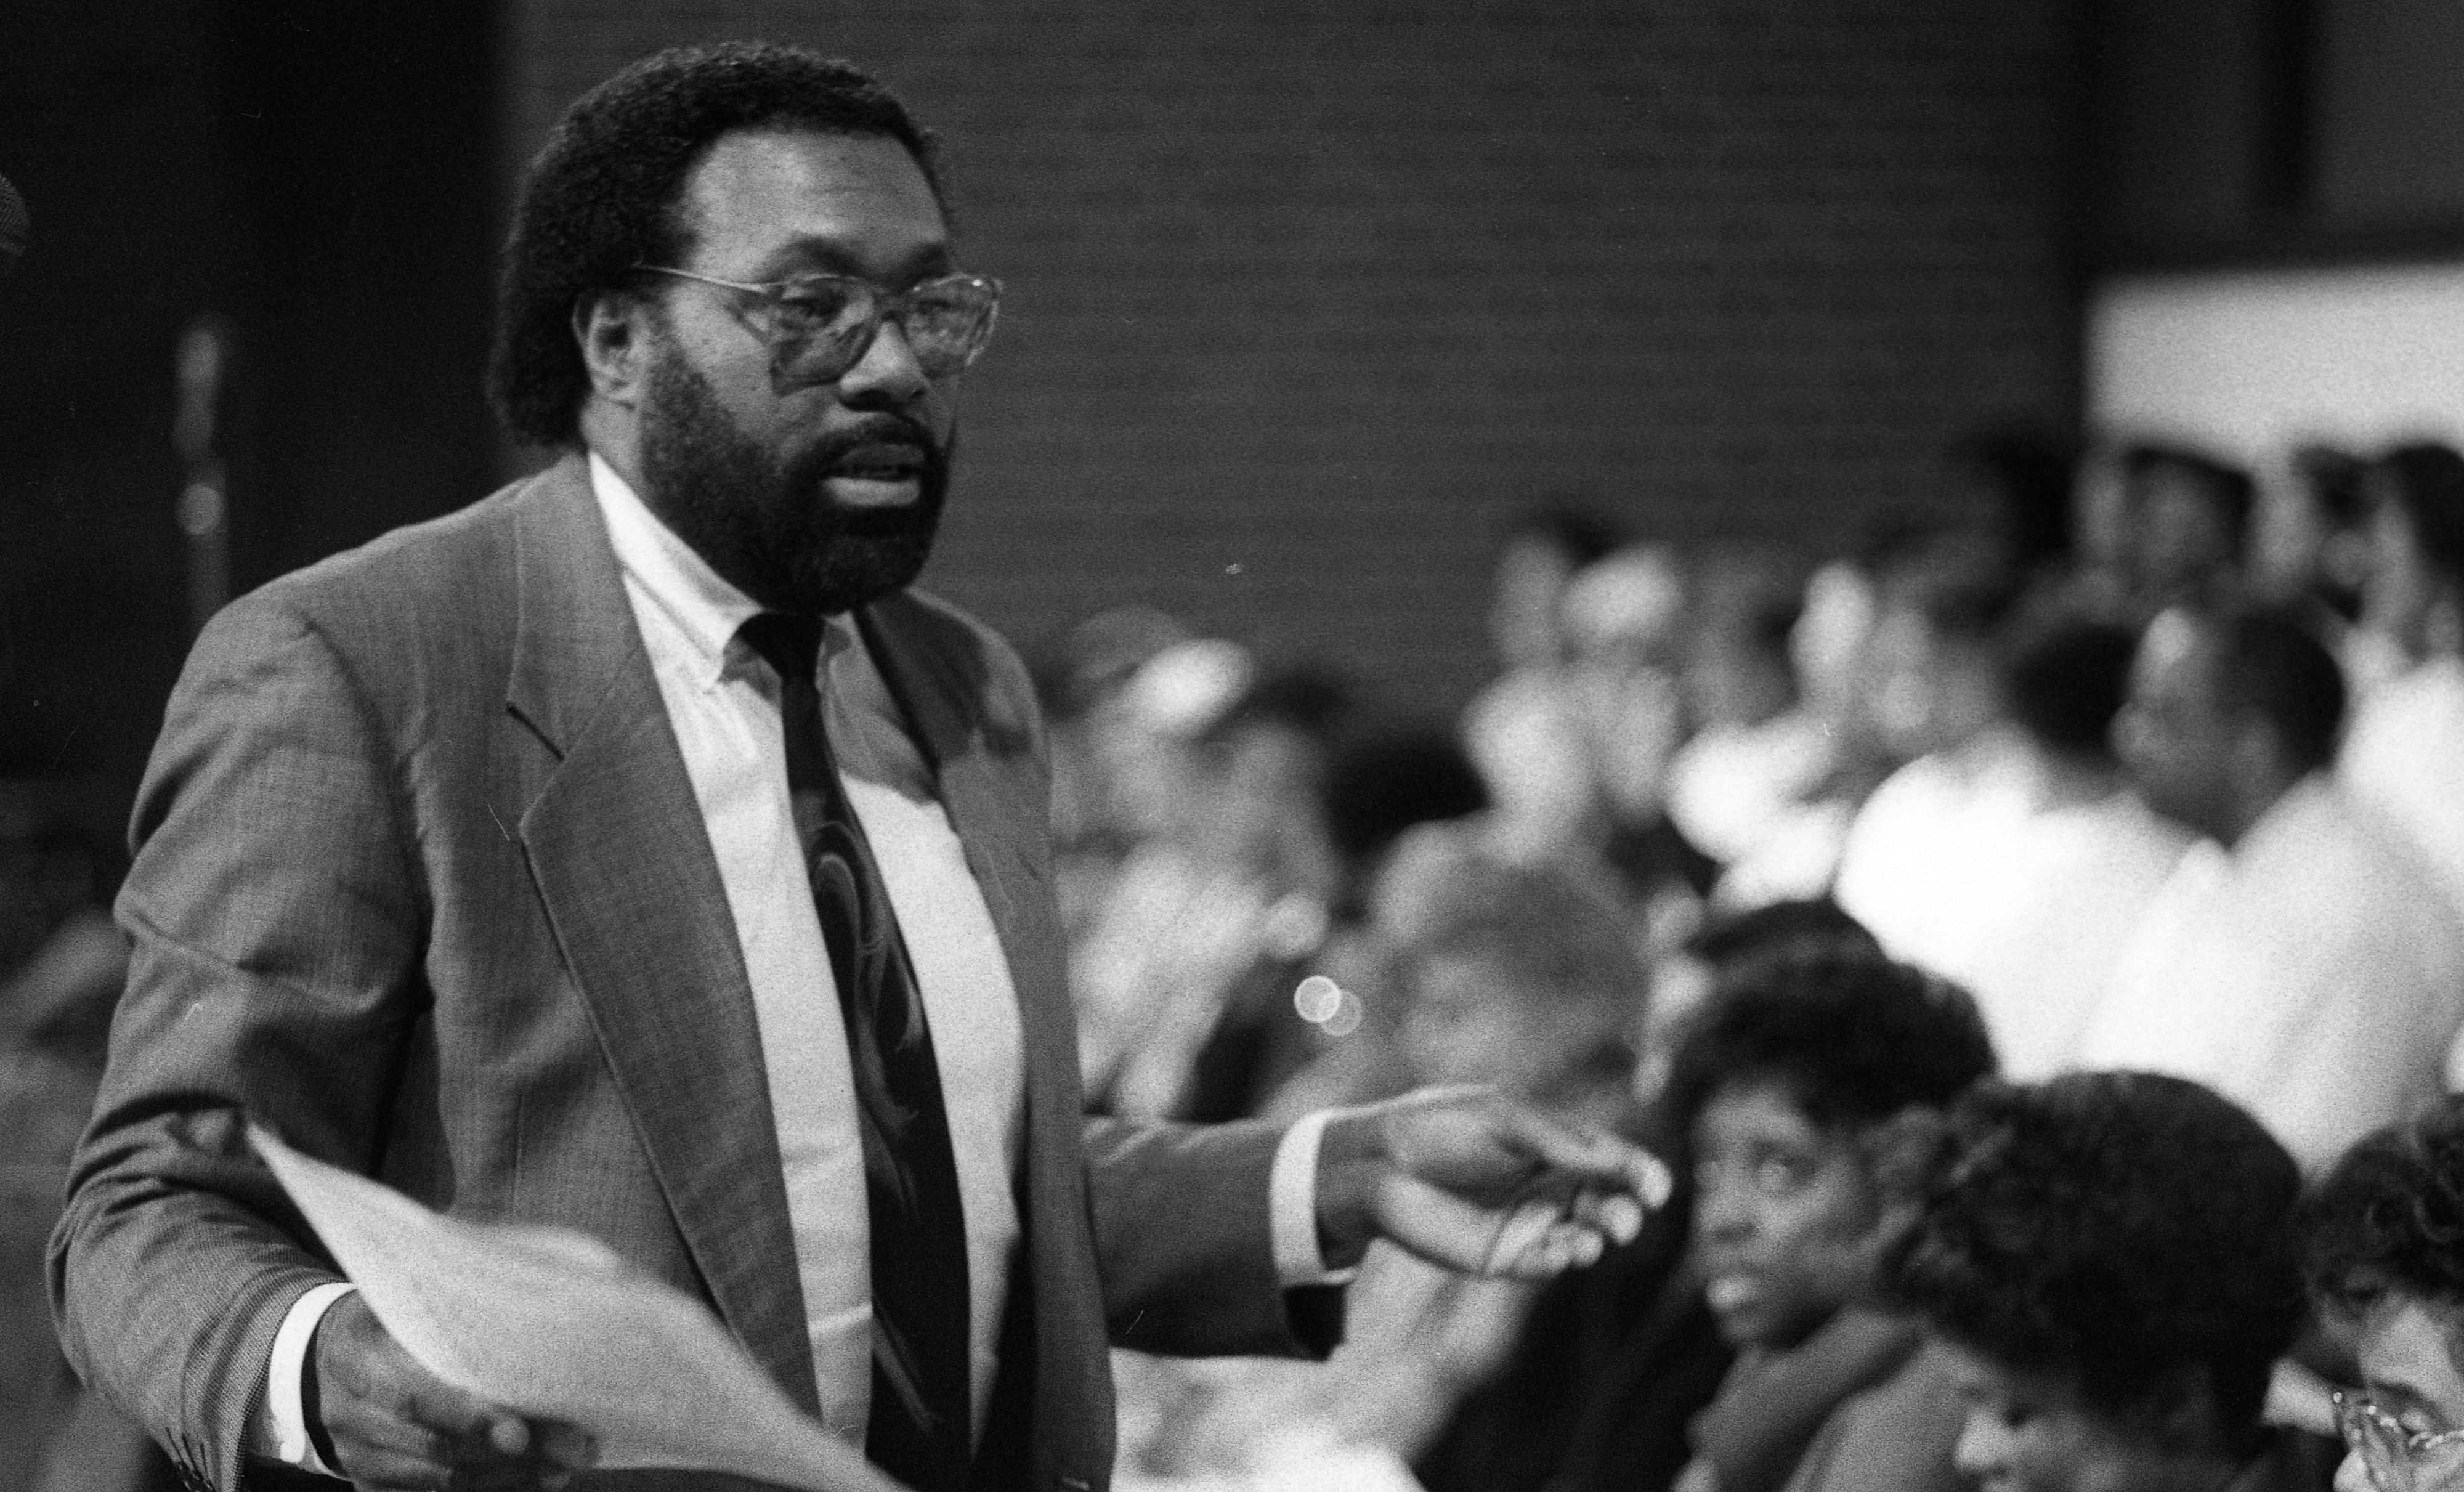 Ron Steele Rehearsing with the Ministerial Alliance Choir at Second Baptist Church, April 1990 image